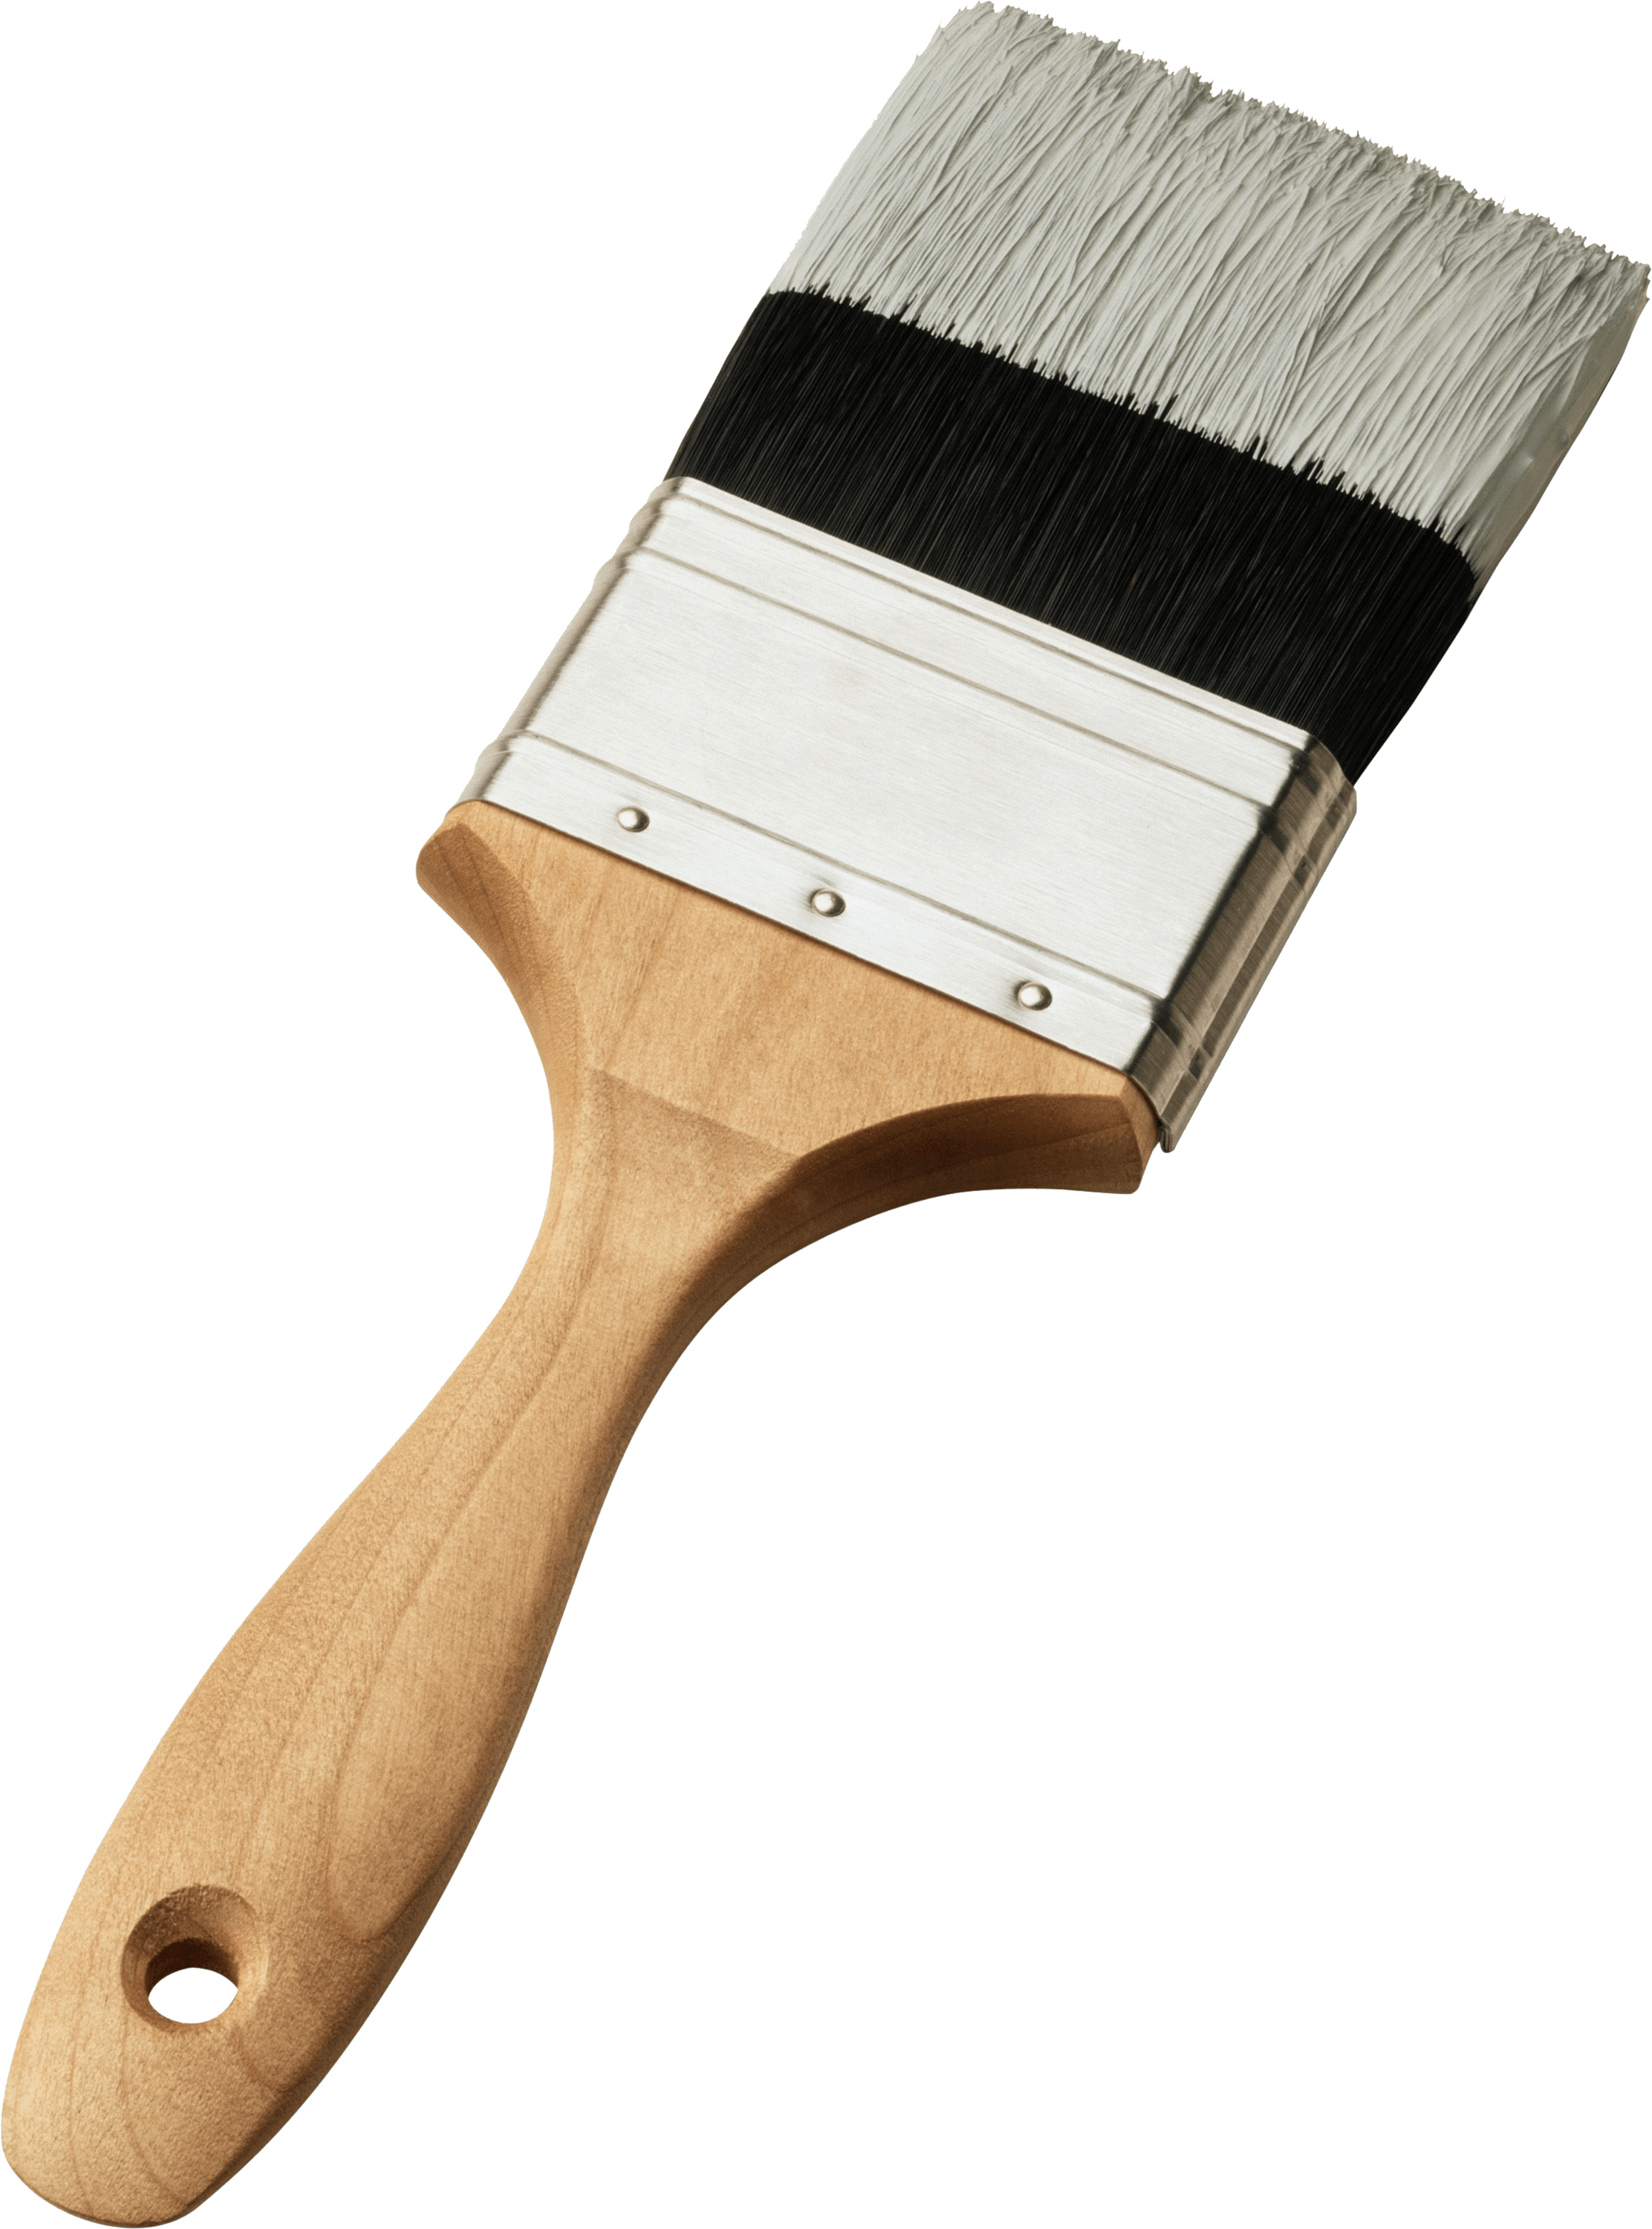 Paintbrush png transparent. Brush images stickpng right